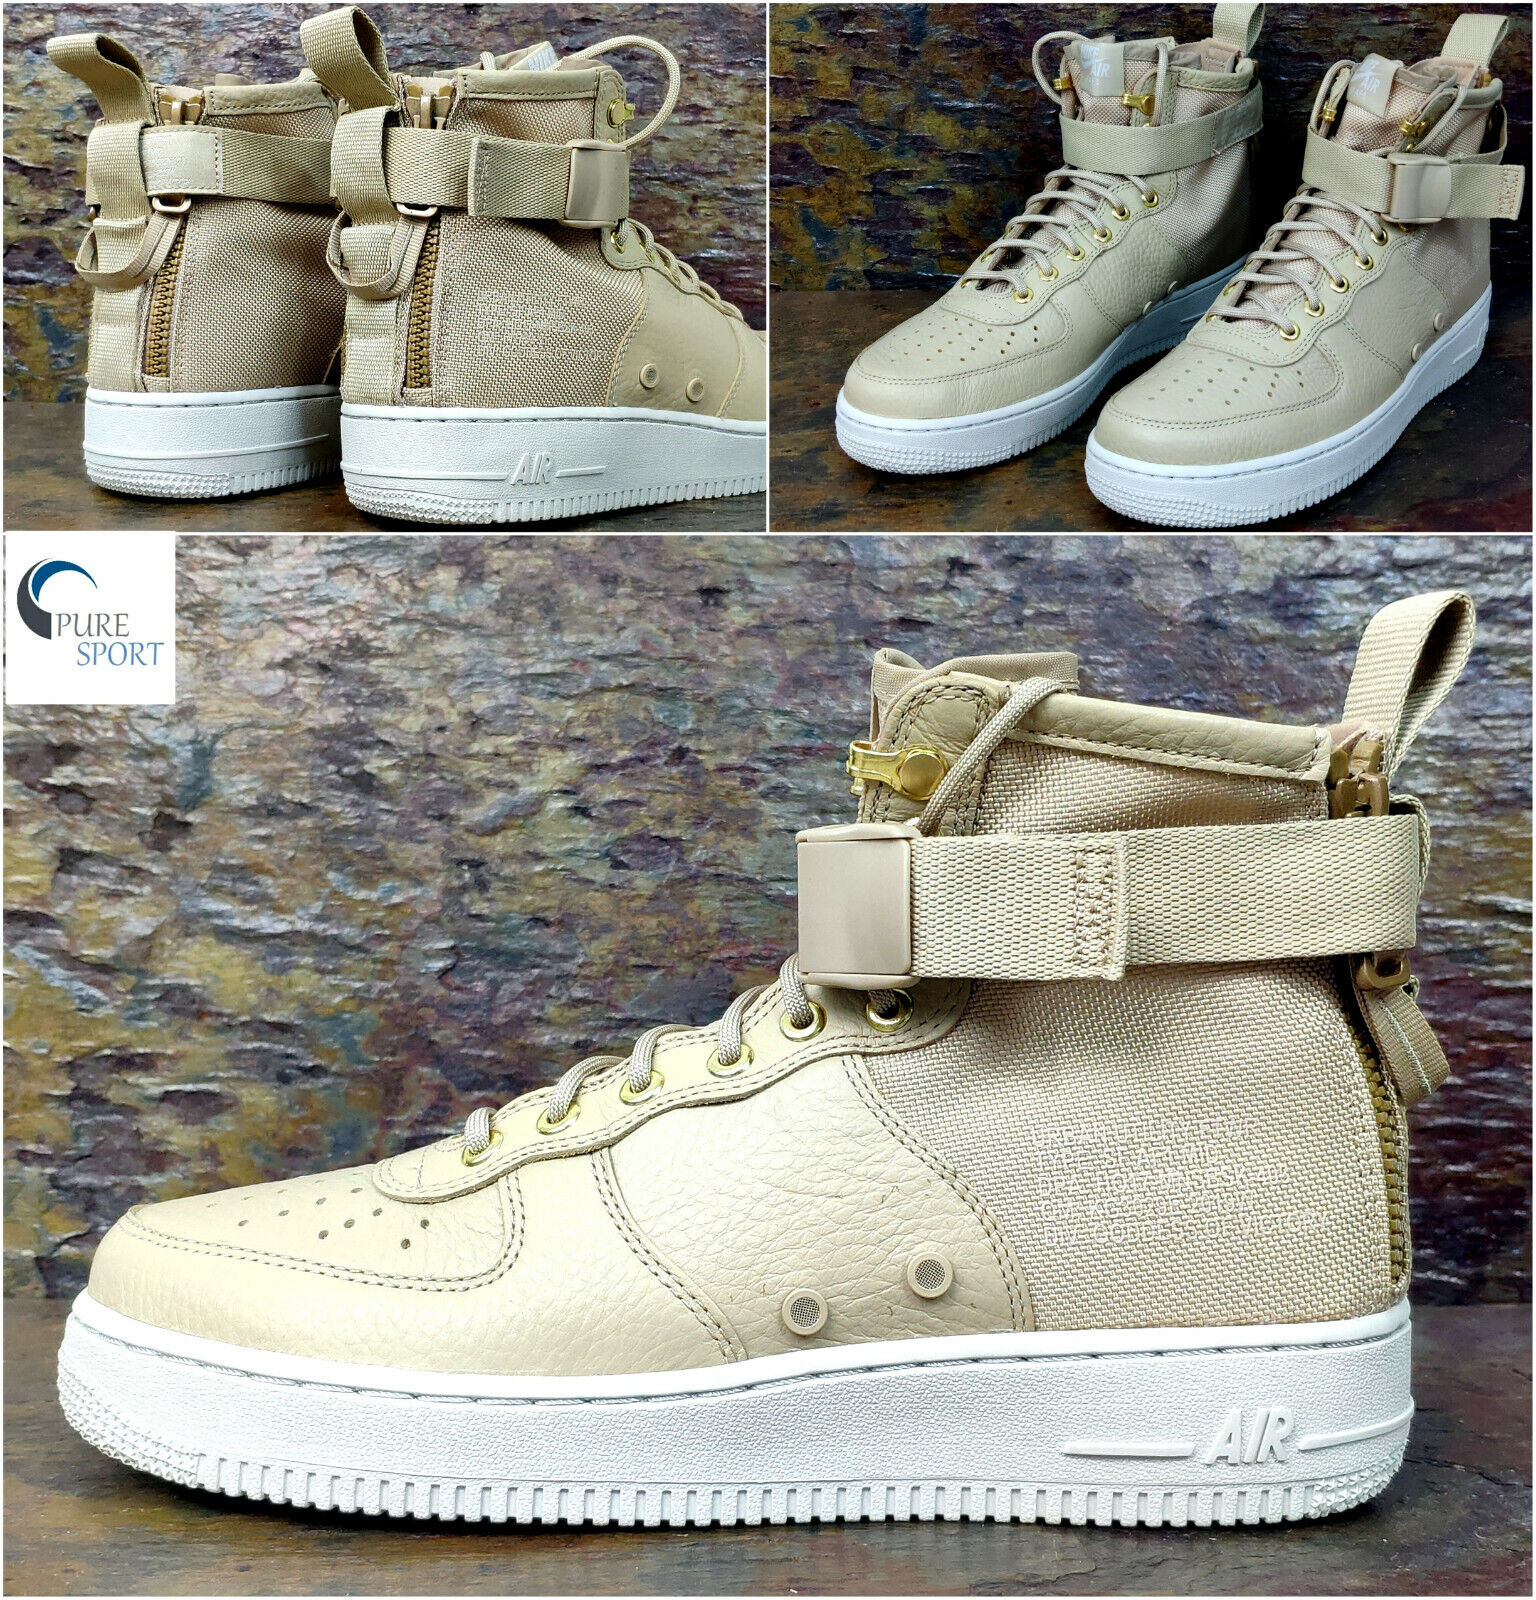 NIKE SF SPECIAL FORCES AIR FORCE 1 Mid Mens Trainers Uk 10  Eu 45 917753 200